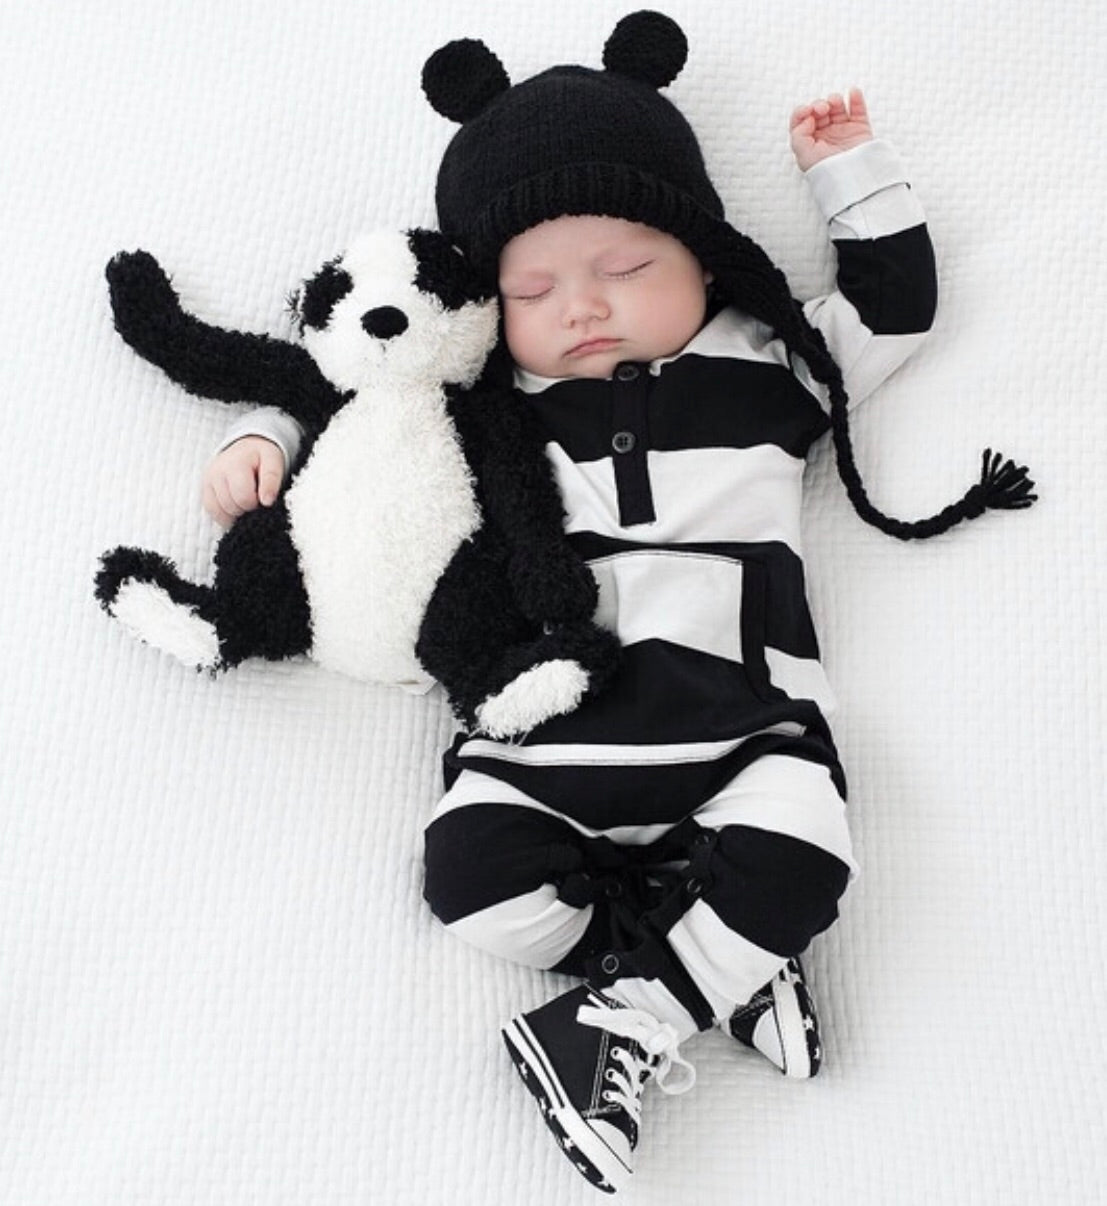 The Striped Onesie